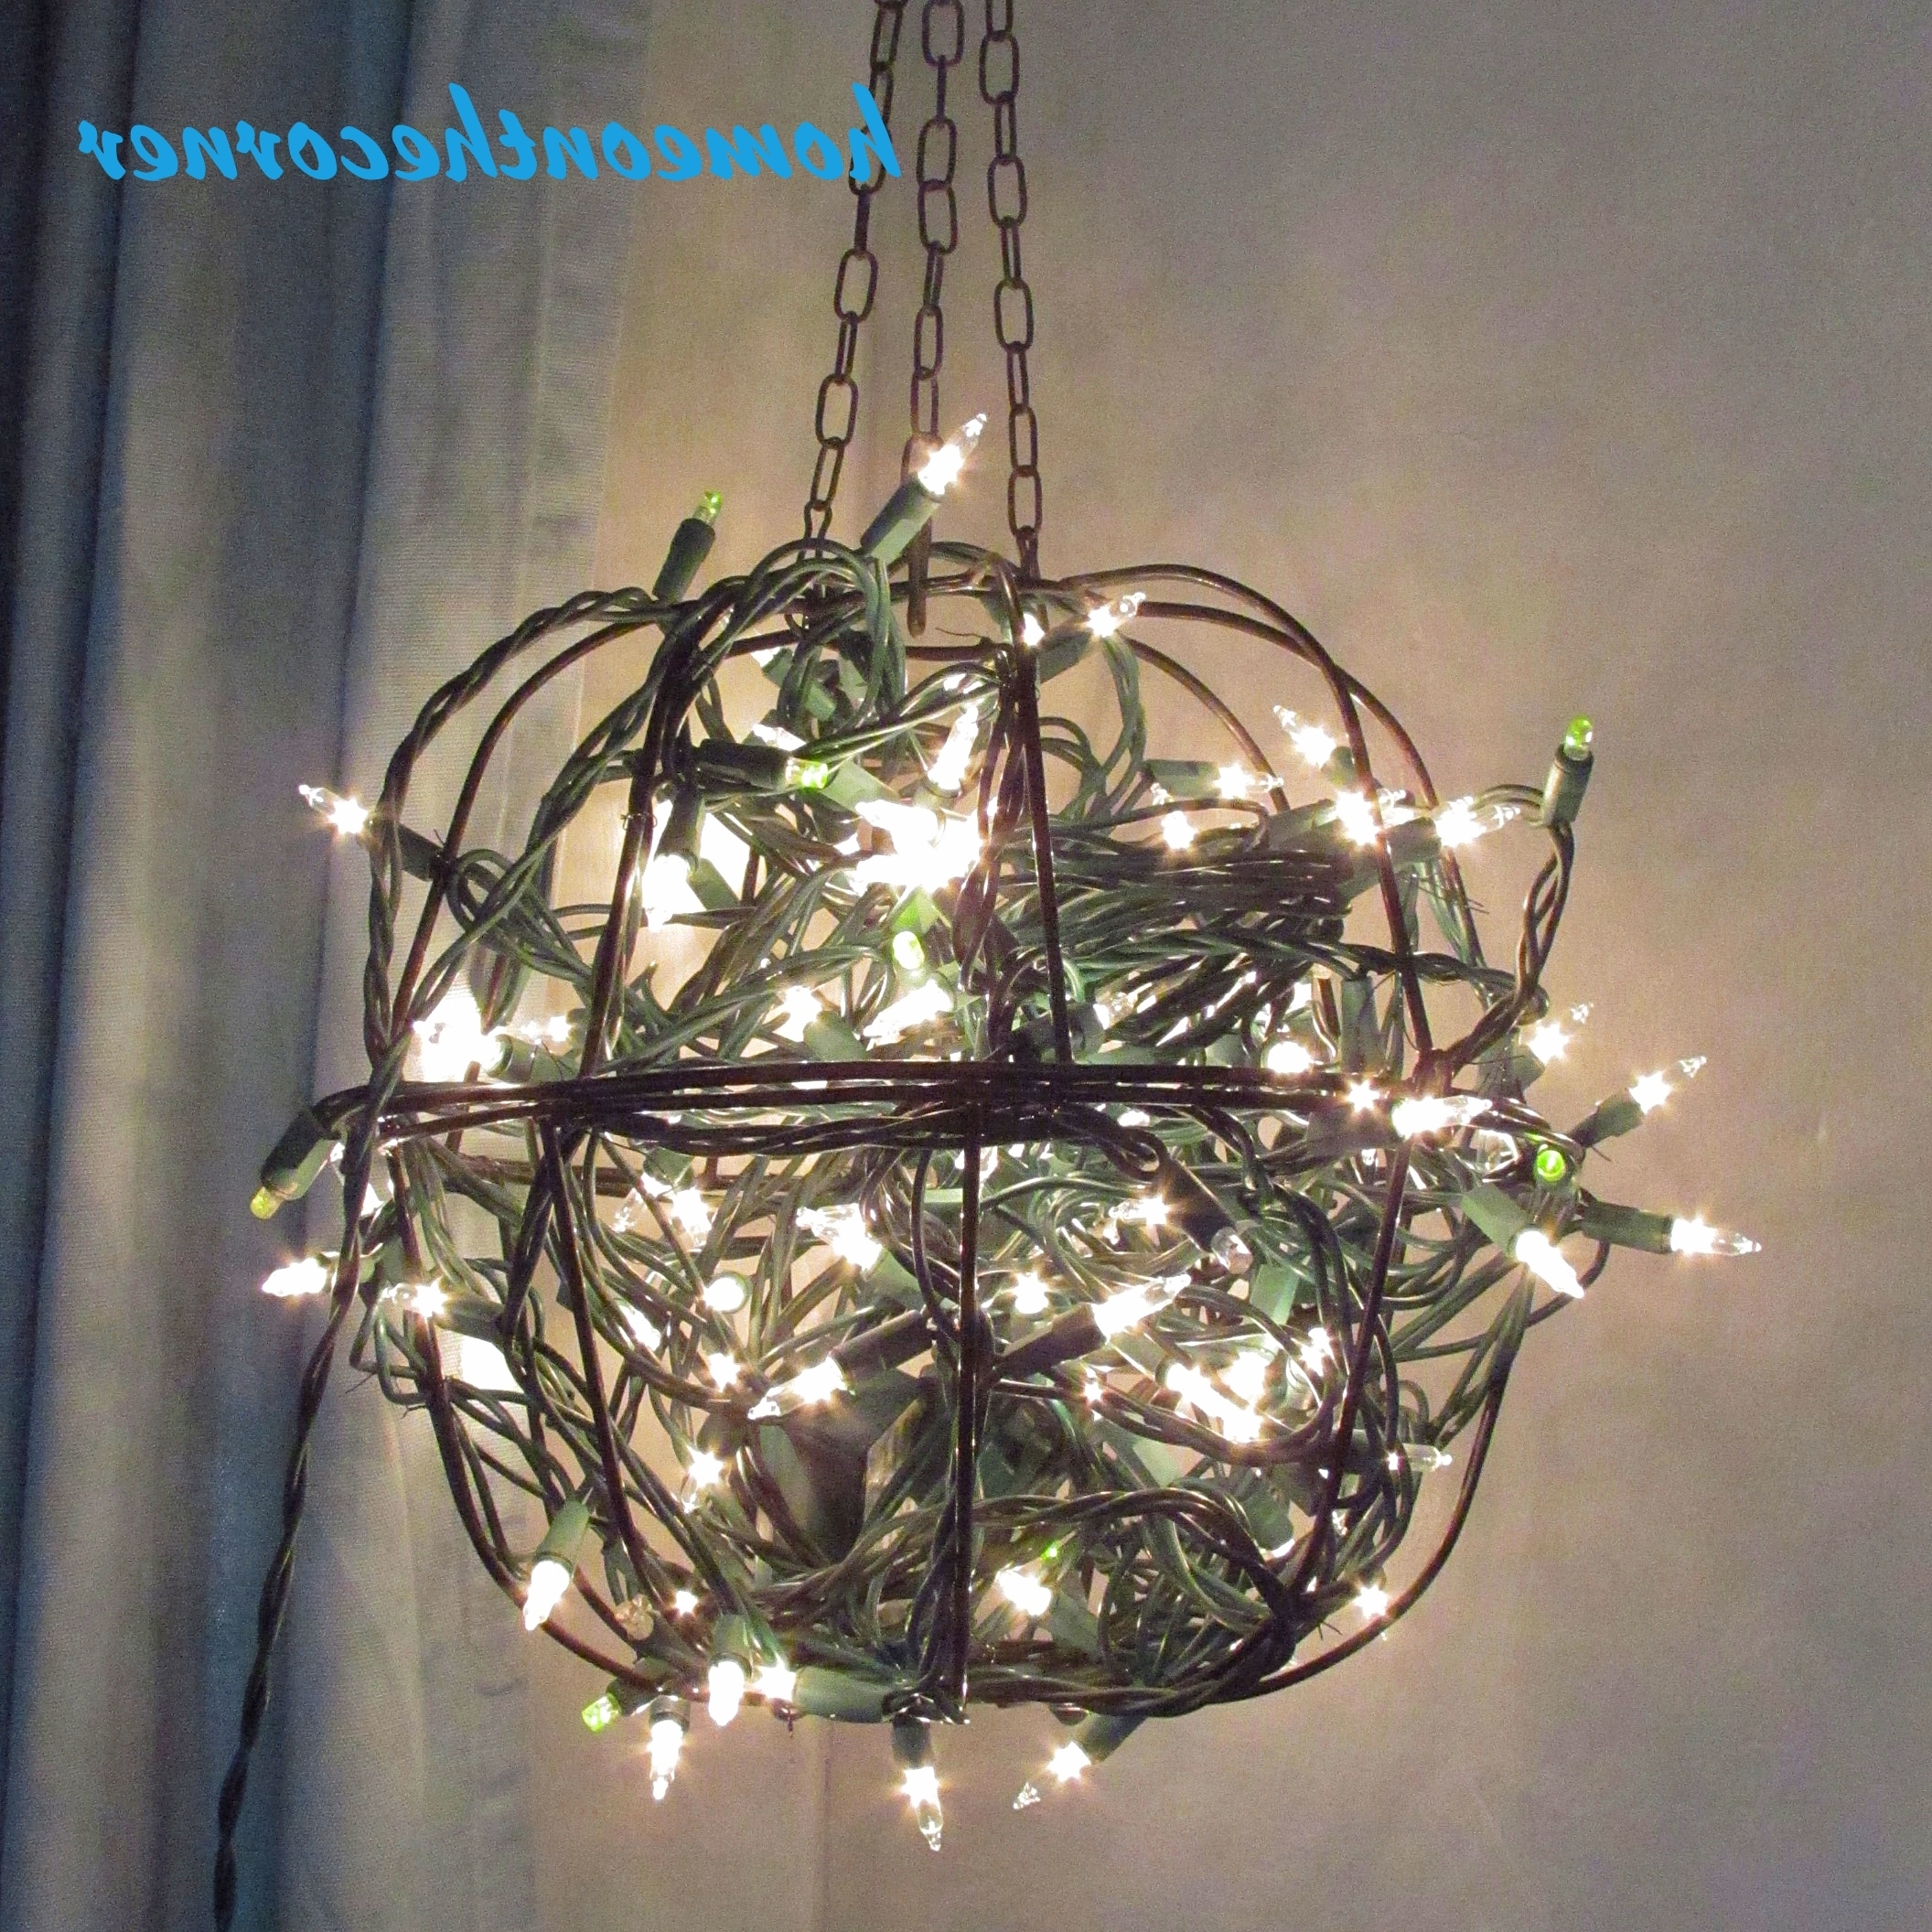 Christmas Hanging Baskets With Lights.View Gallery Of Outdoor Hanging Basket Lights Showing 2 Of